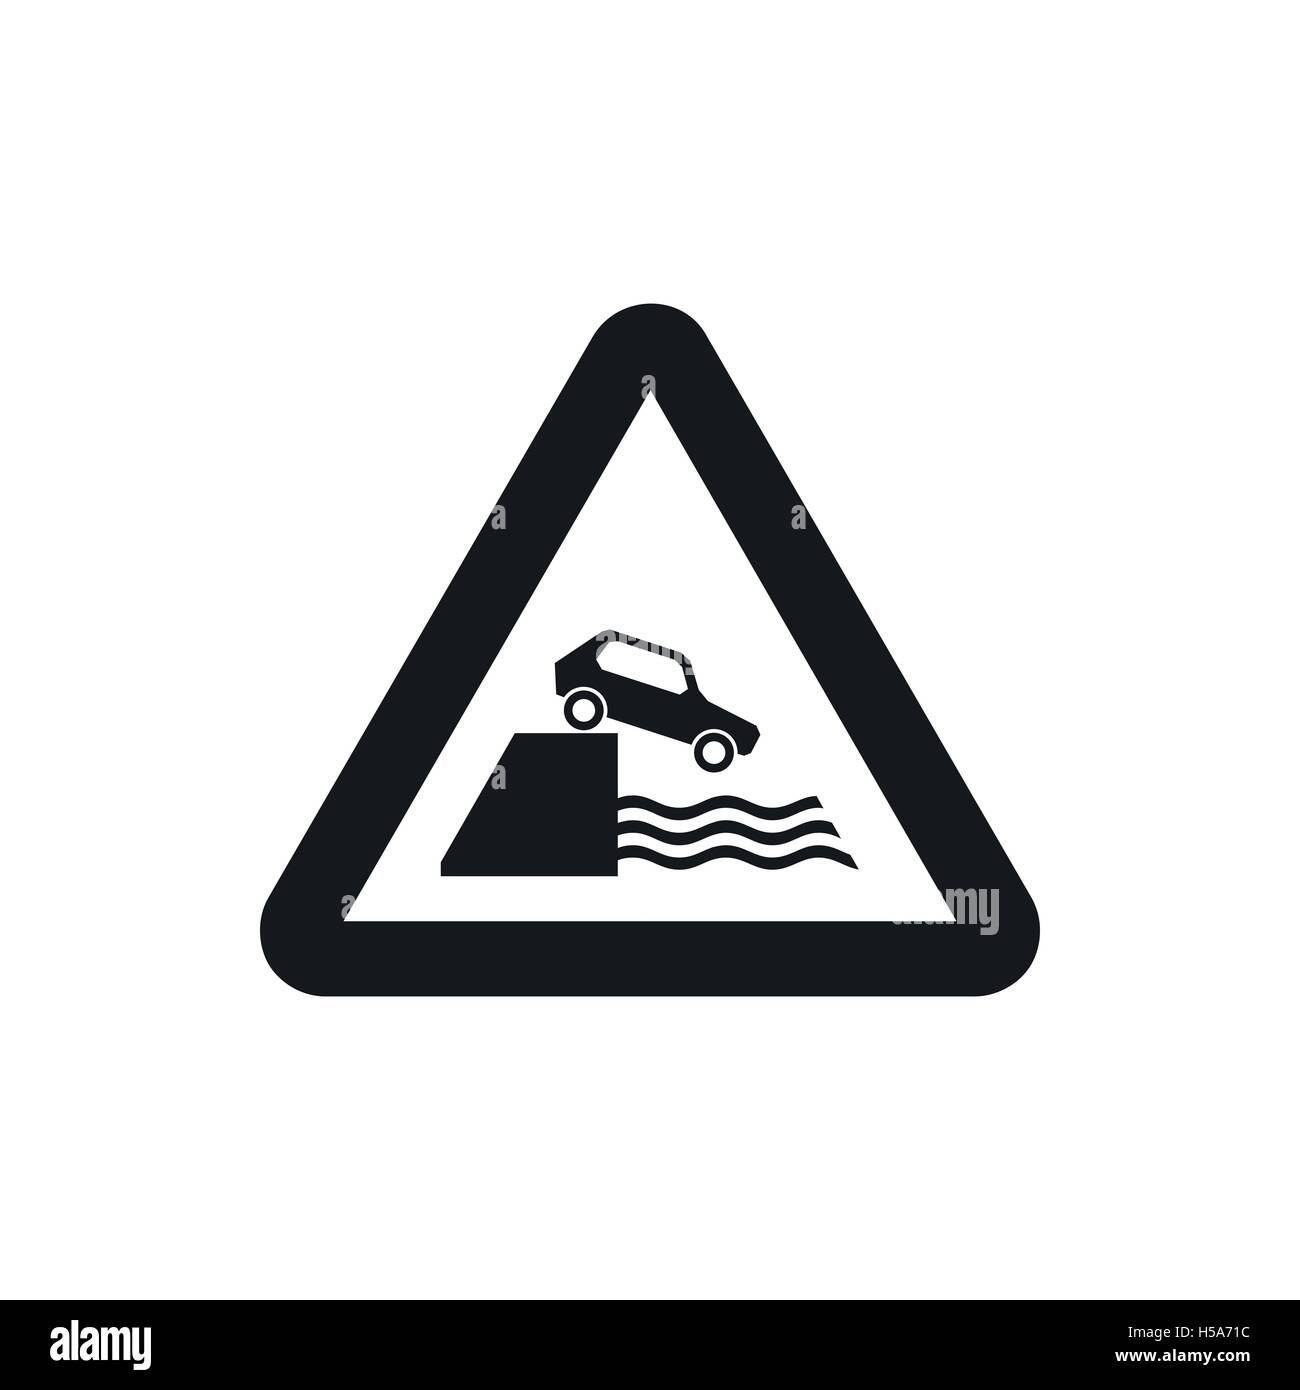 Riverbank traffic sign icon, simple style - Stock Image